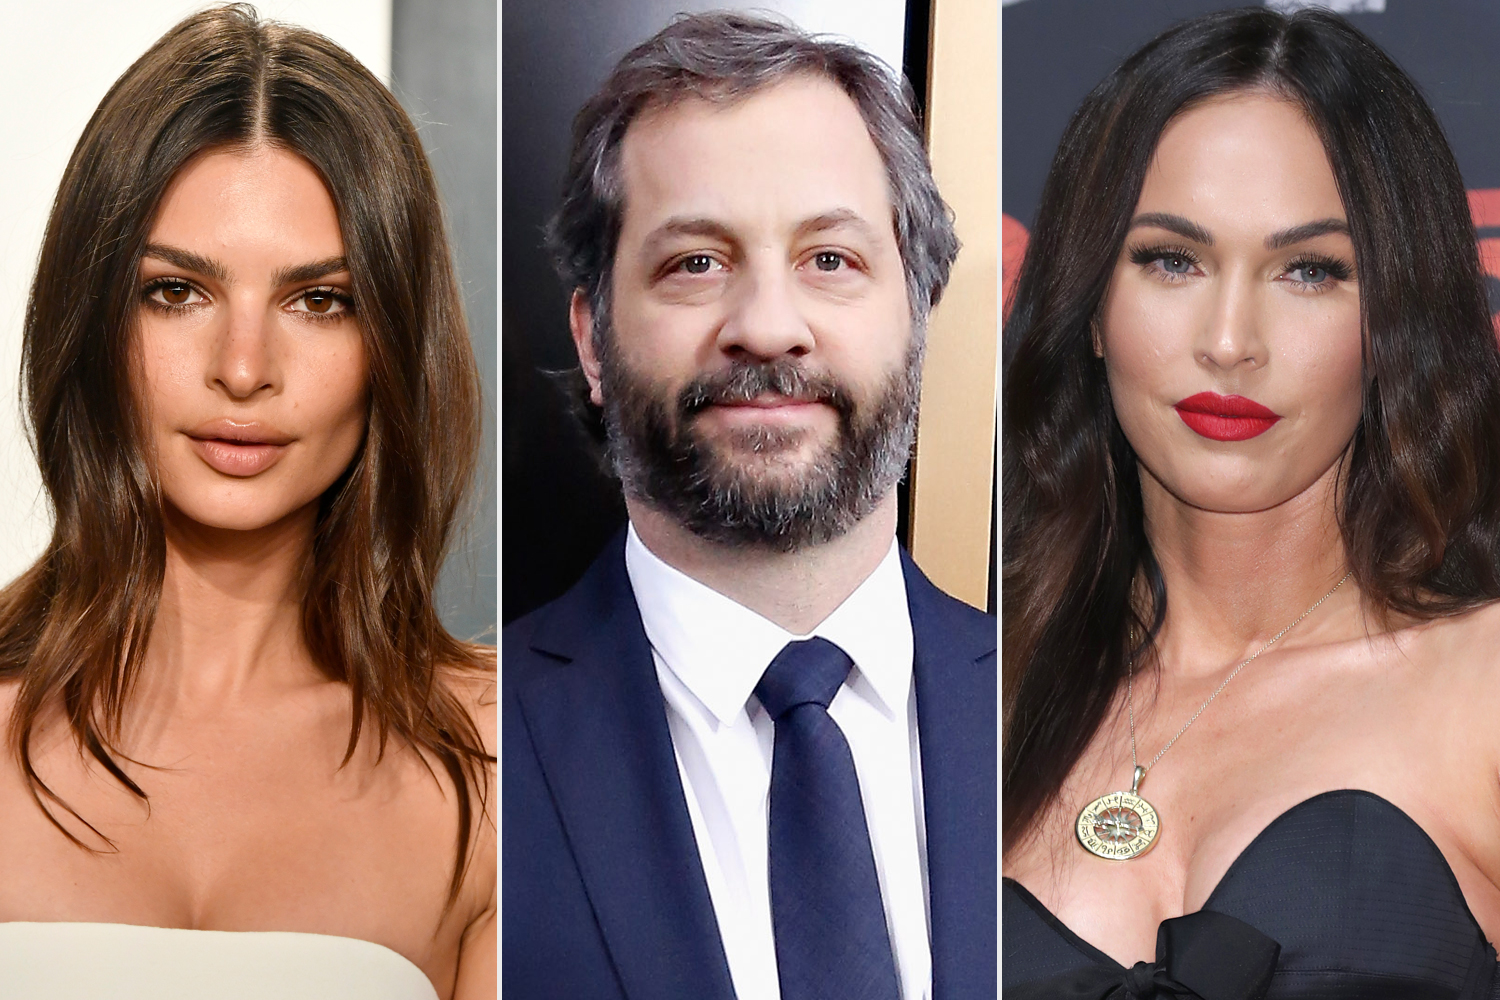 Emily Ratajkowski, Judd Apatow의 This Is 40 for Objectification of Megan Fox : 'Not Aging Well'